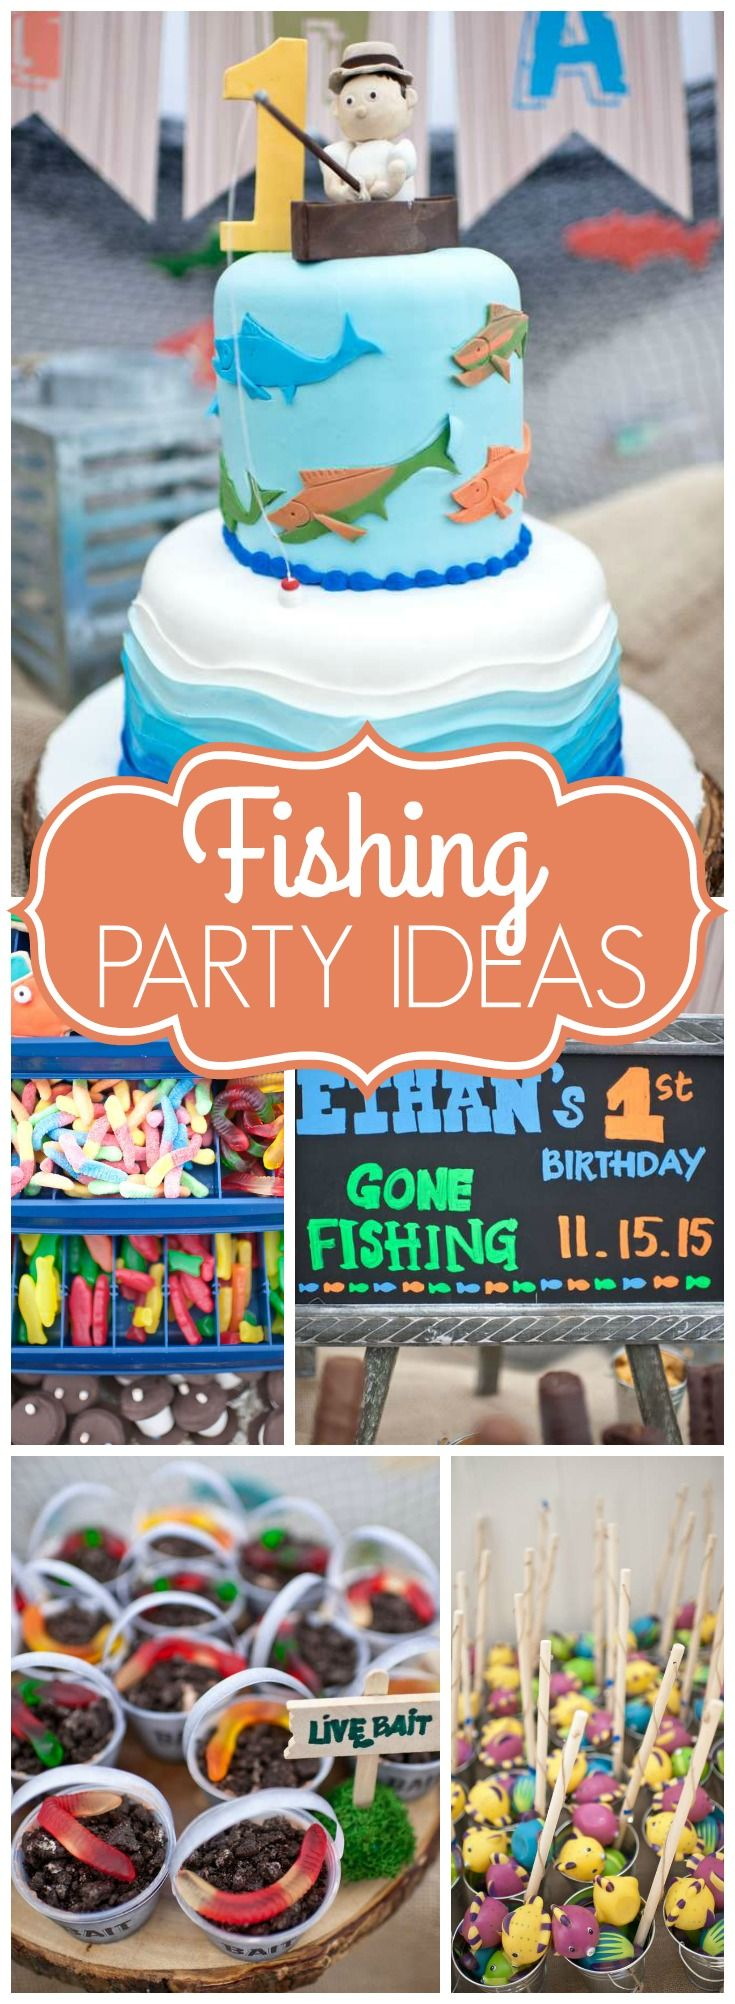 1st birthday party activities for kids ; 760a89b60f0744c027e45d04aaac2666--st-birthday-parties-st-birthdays